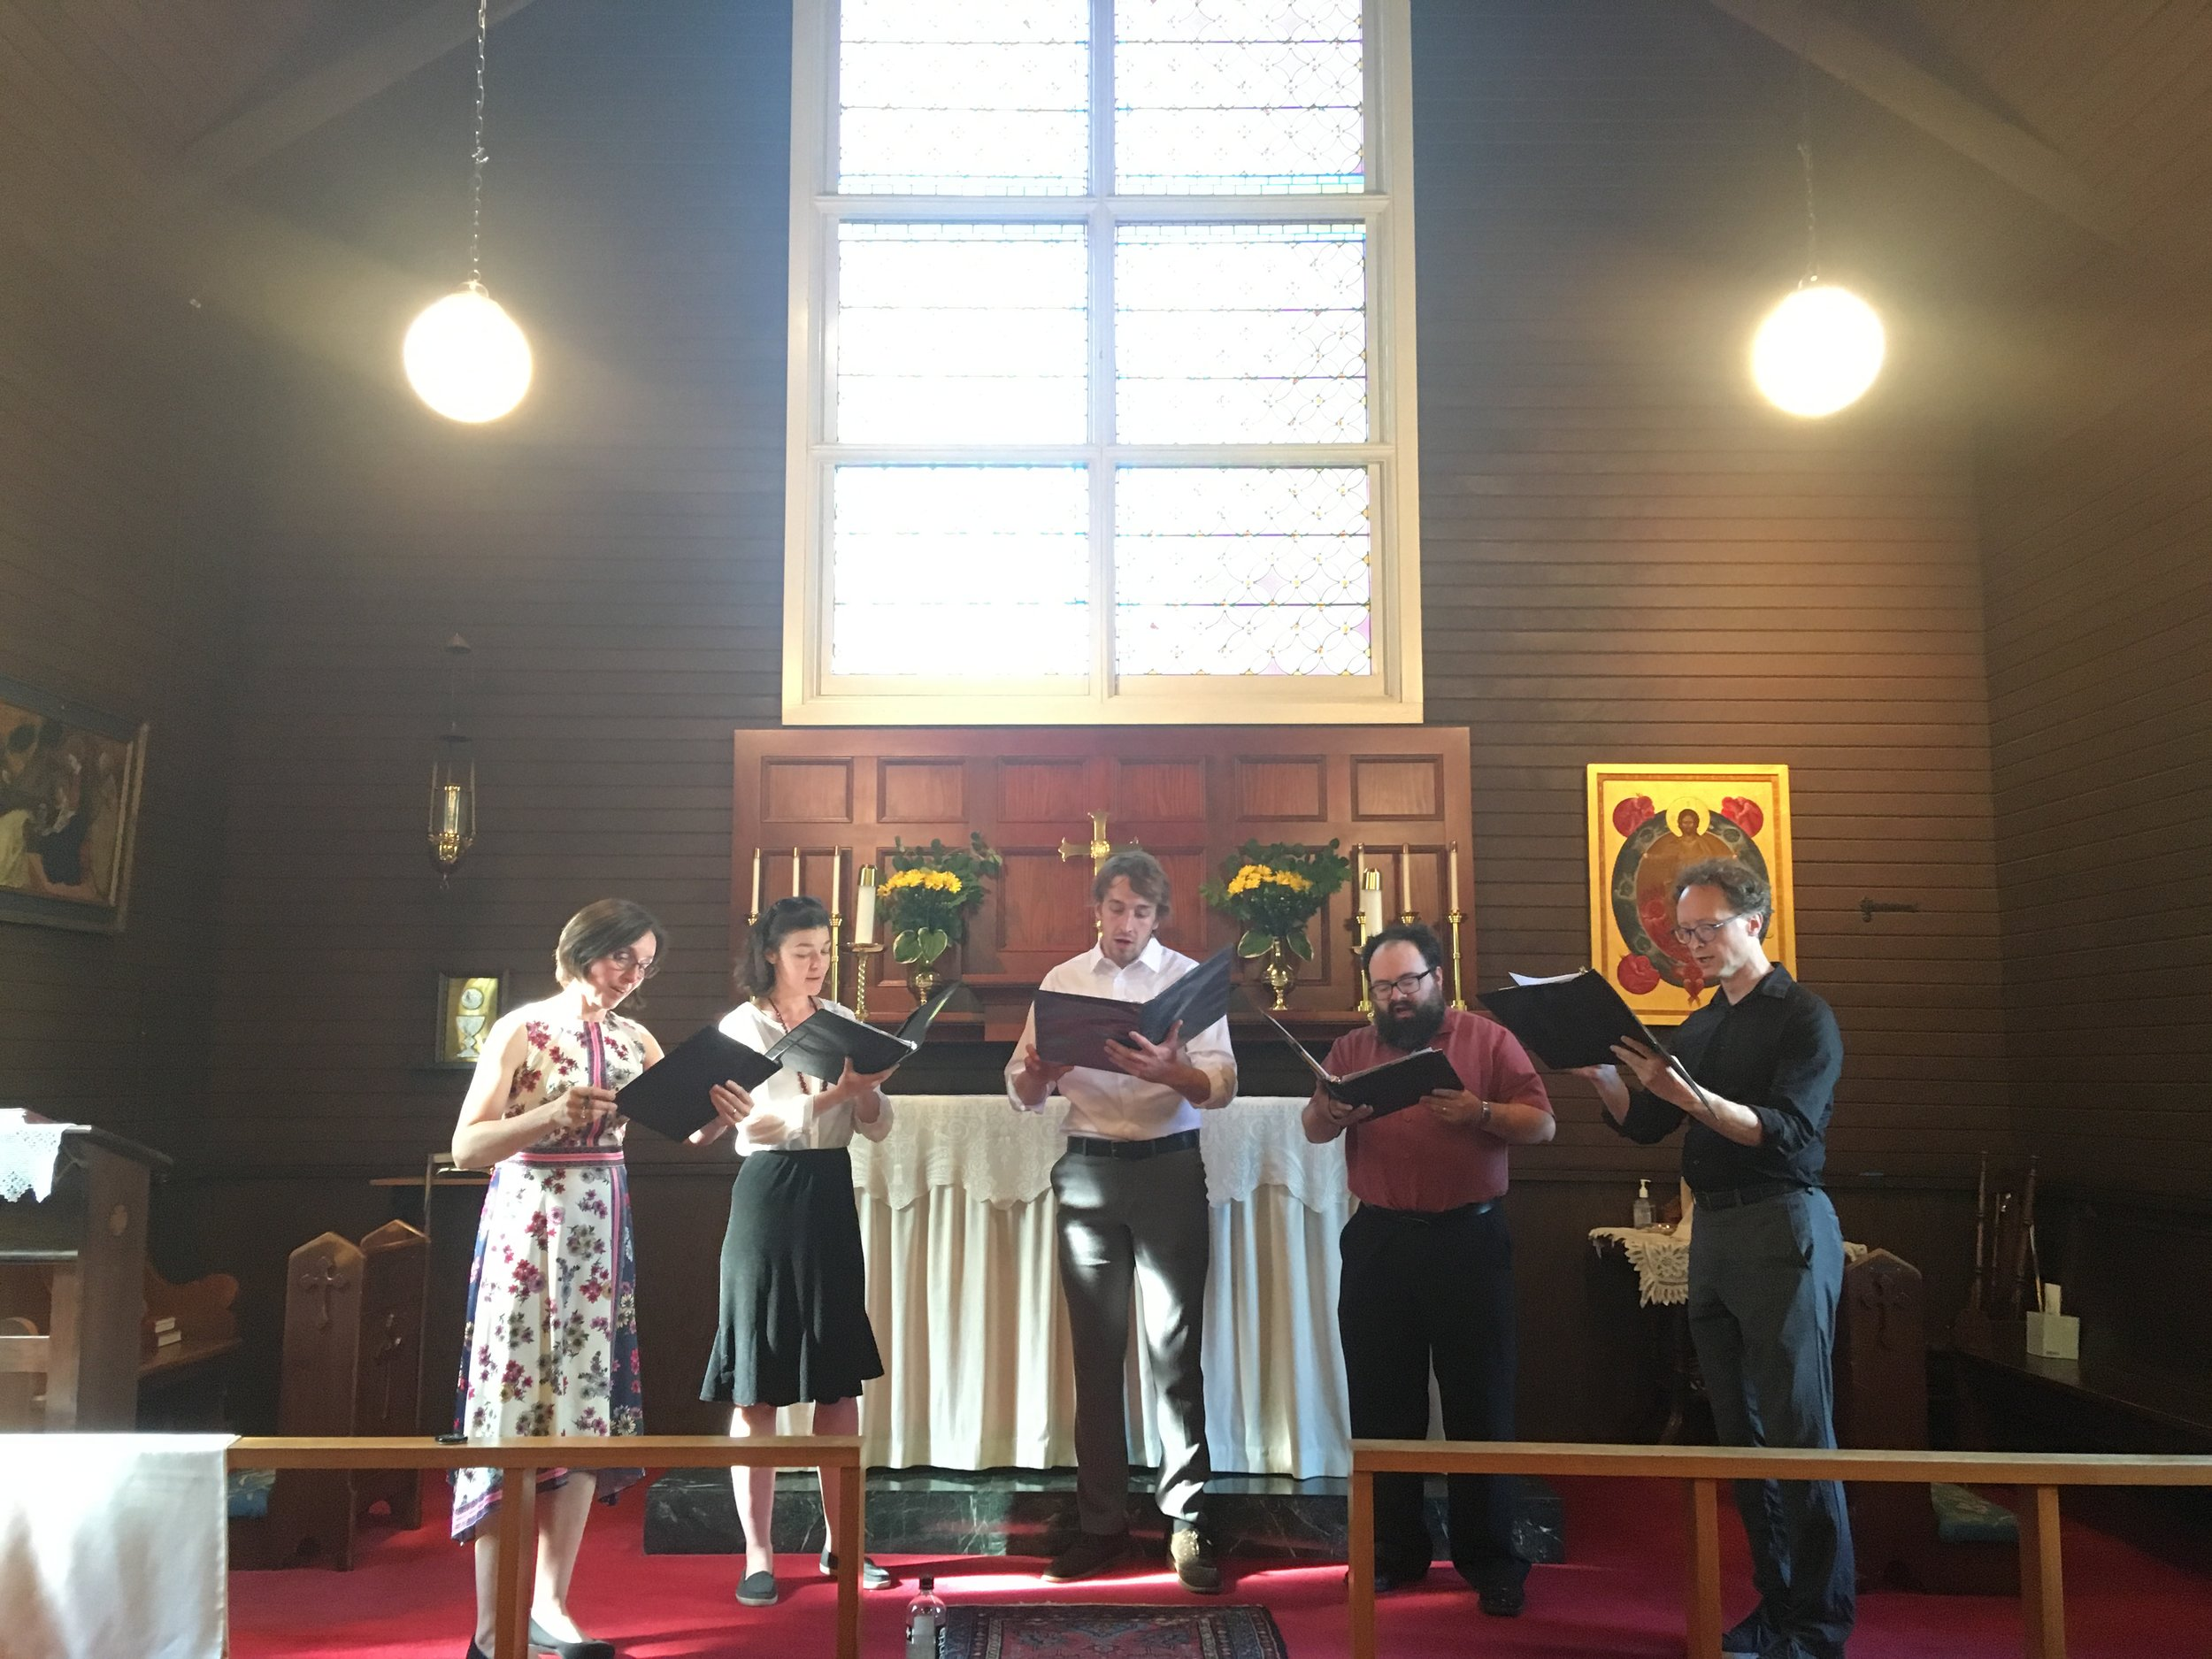 A guest chamber choir performs in our chapel.